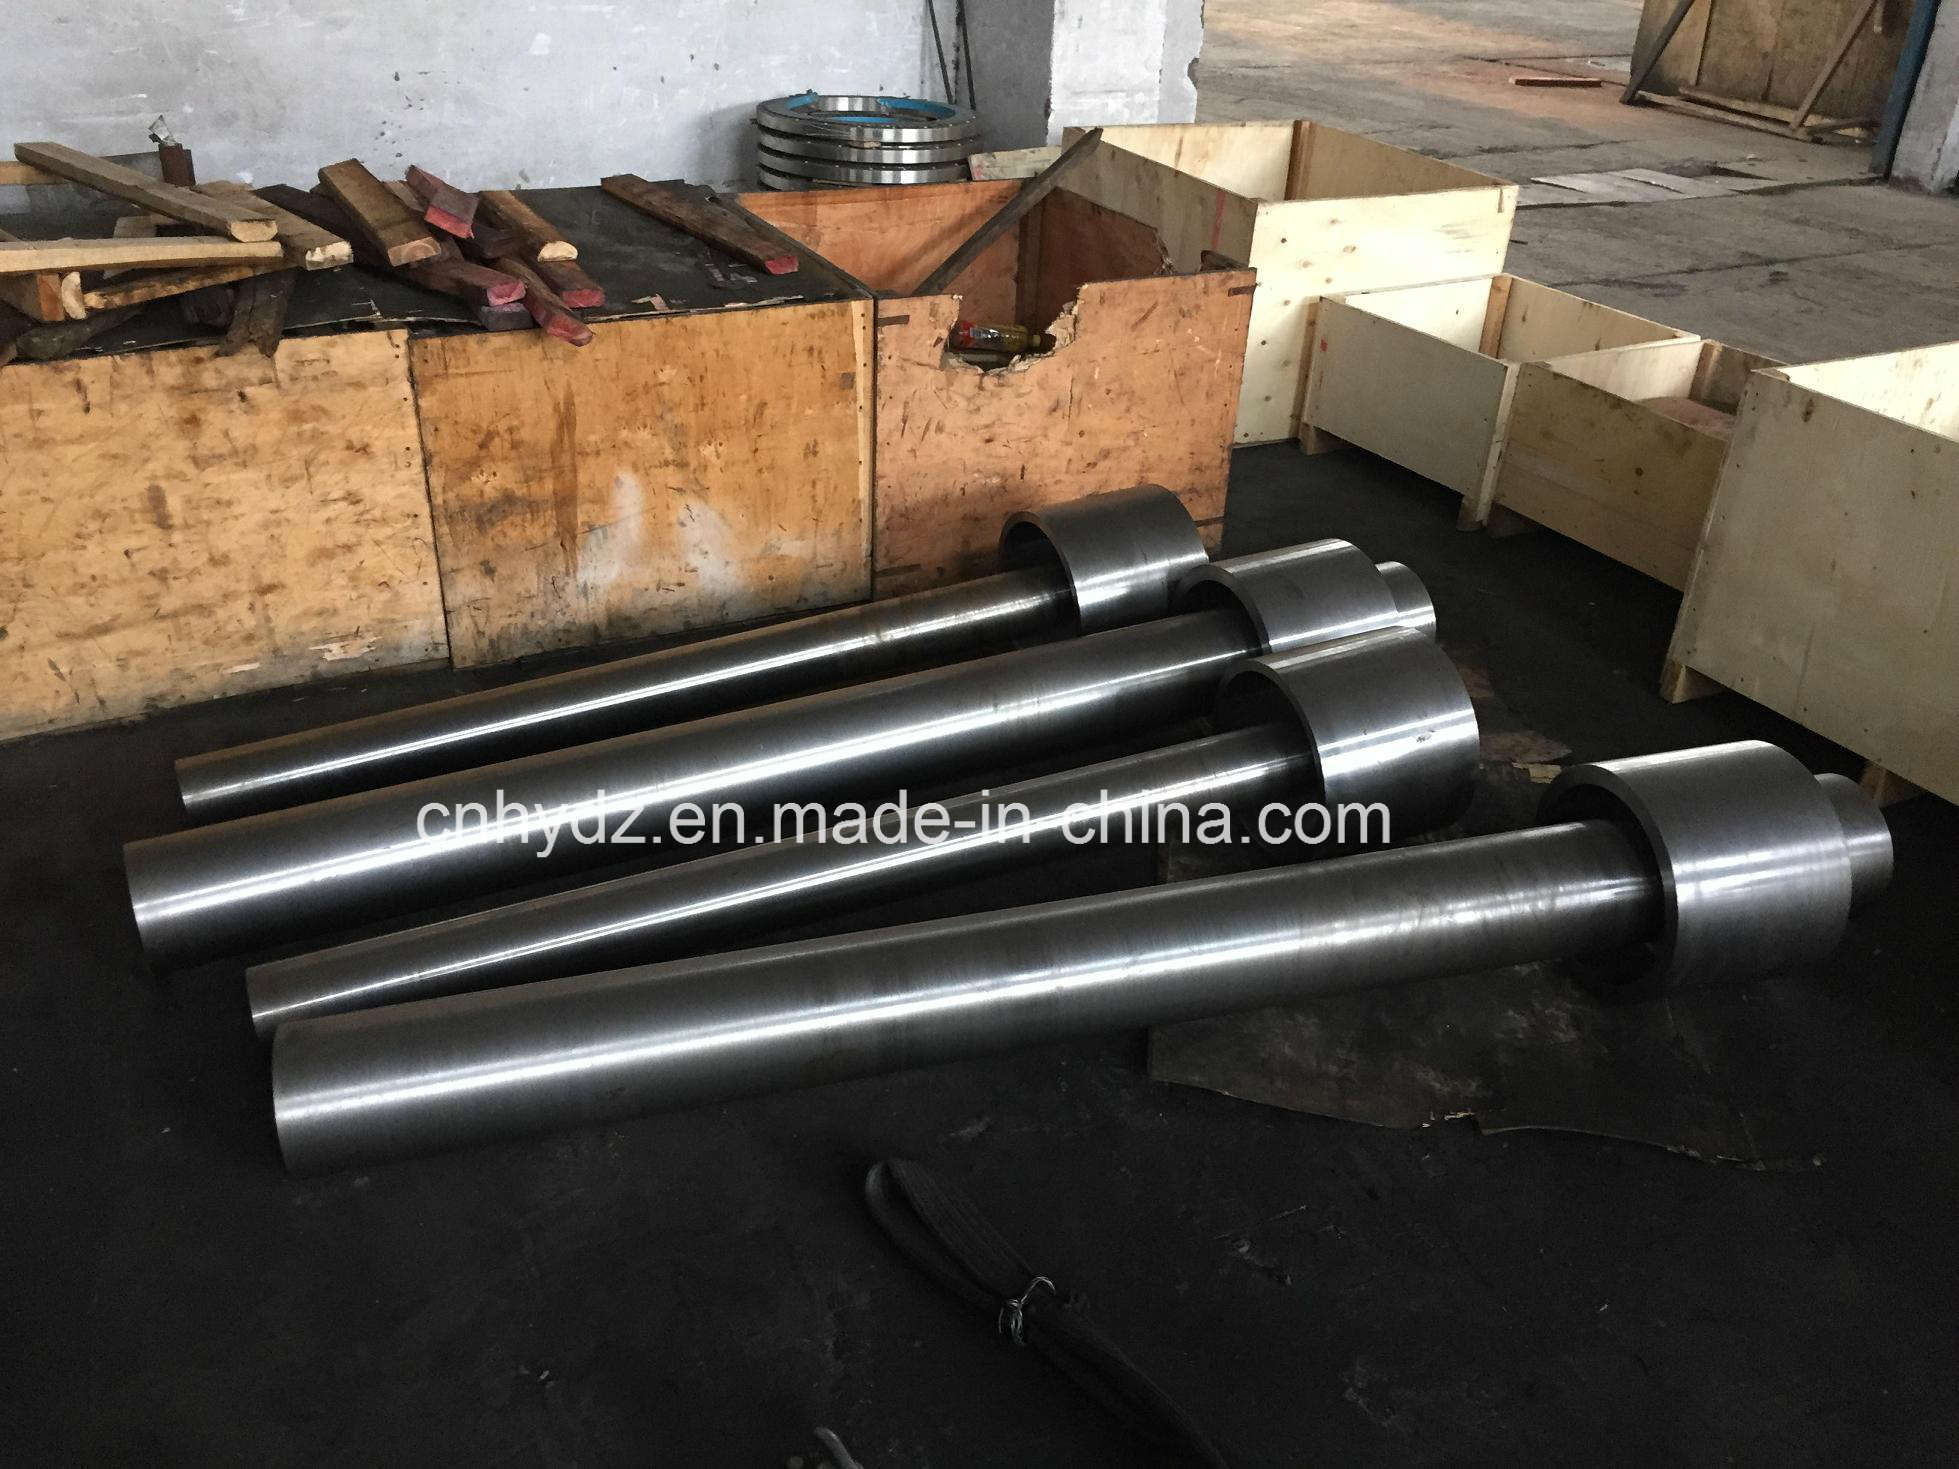 Material 25crmo4 Hot Forged Shaft